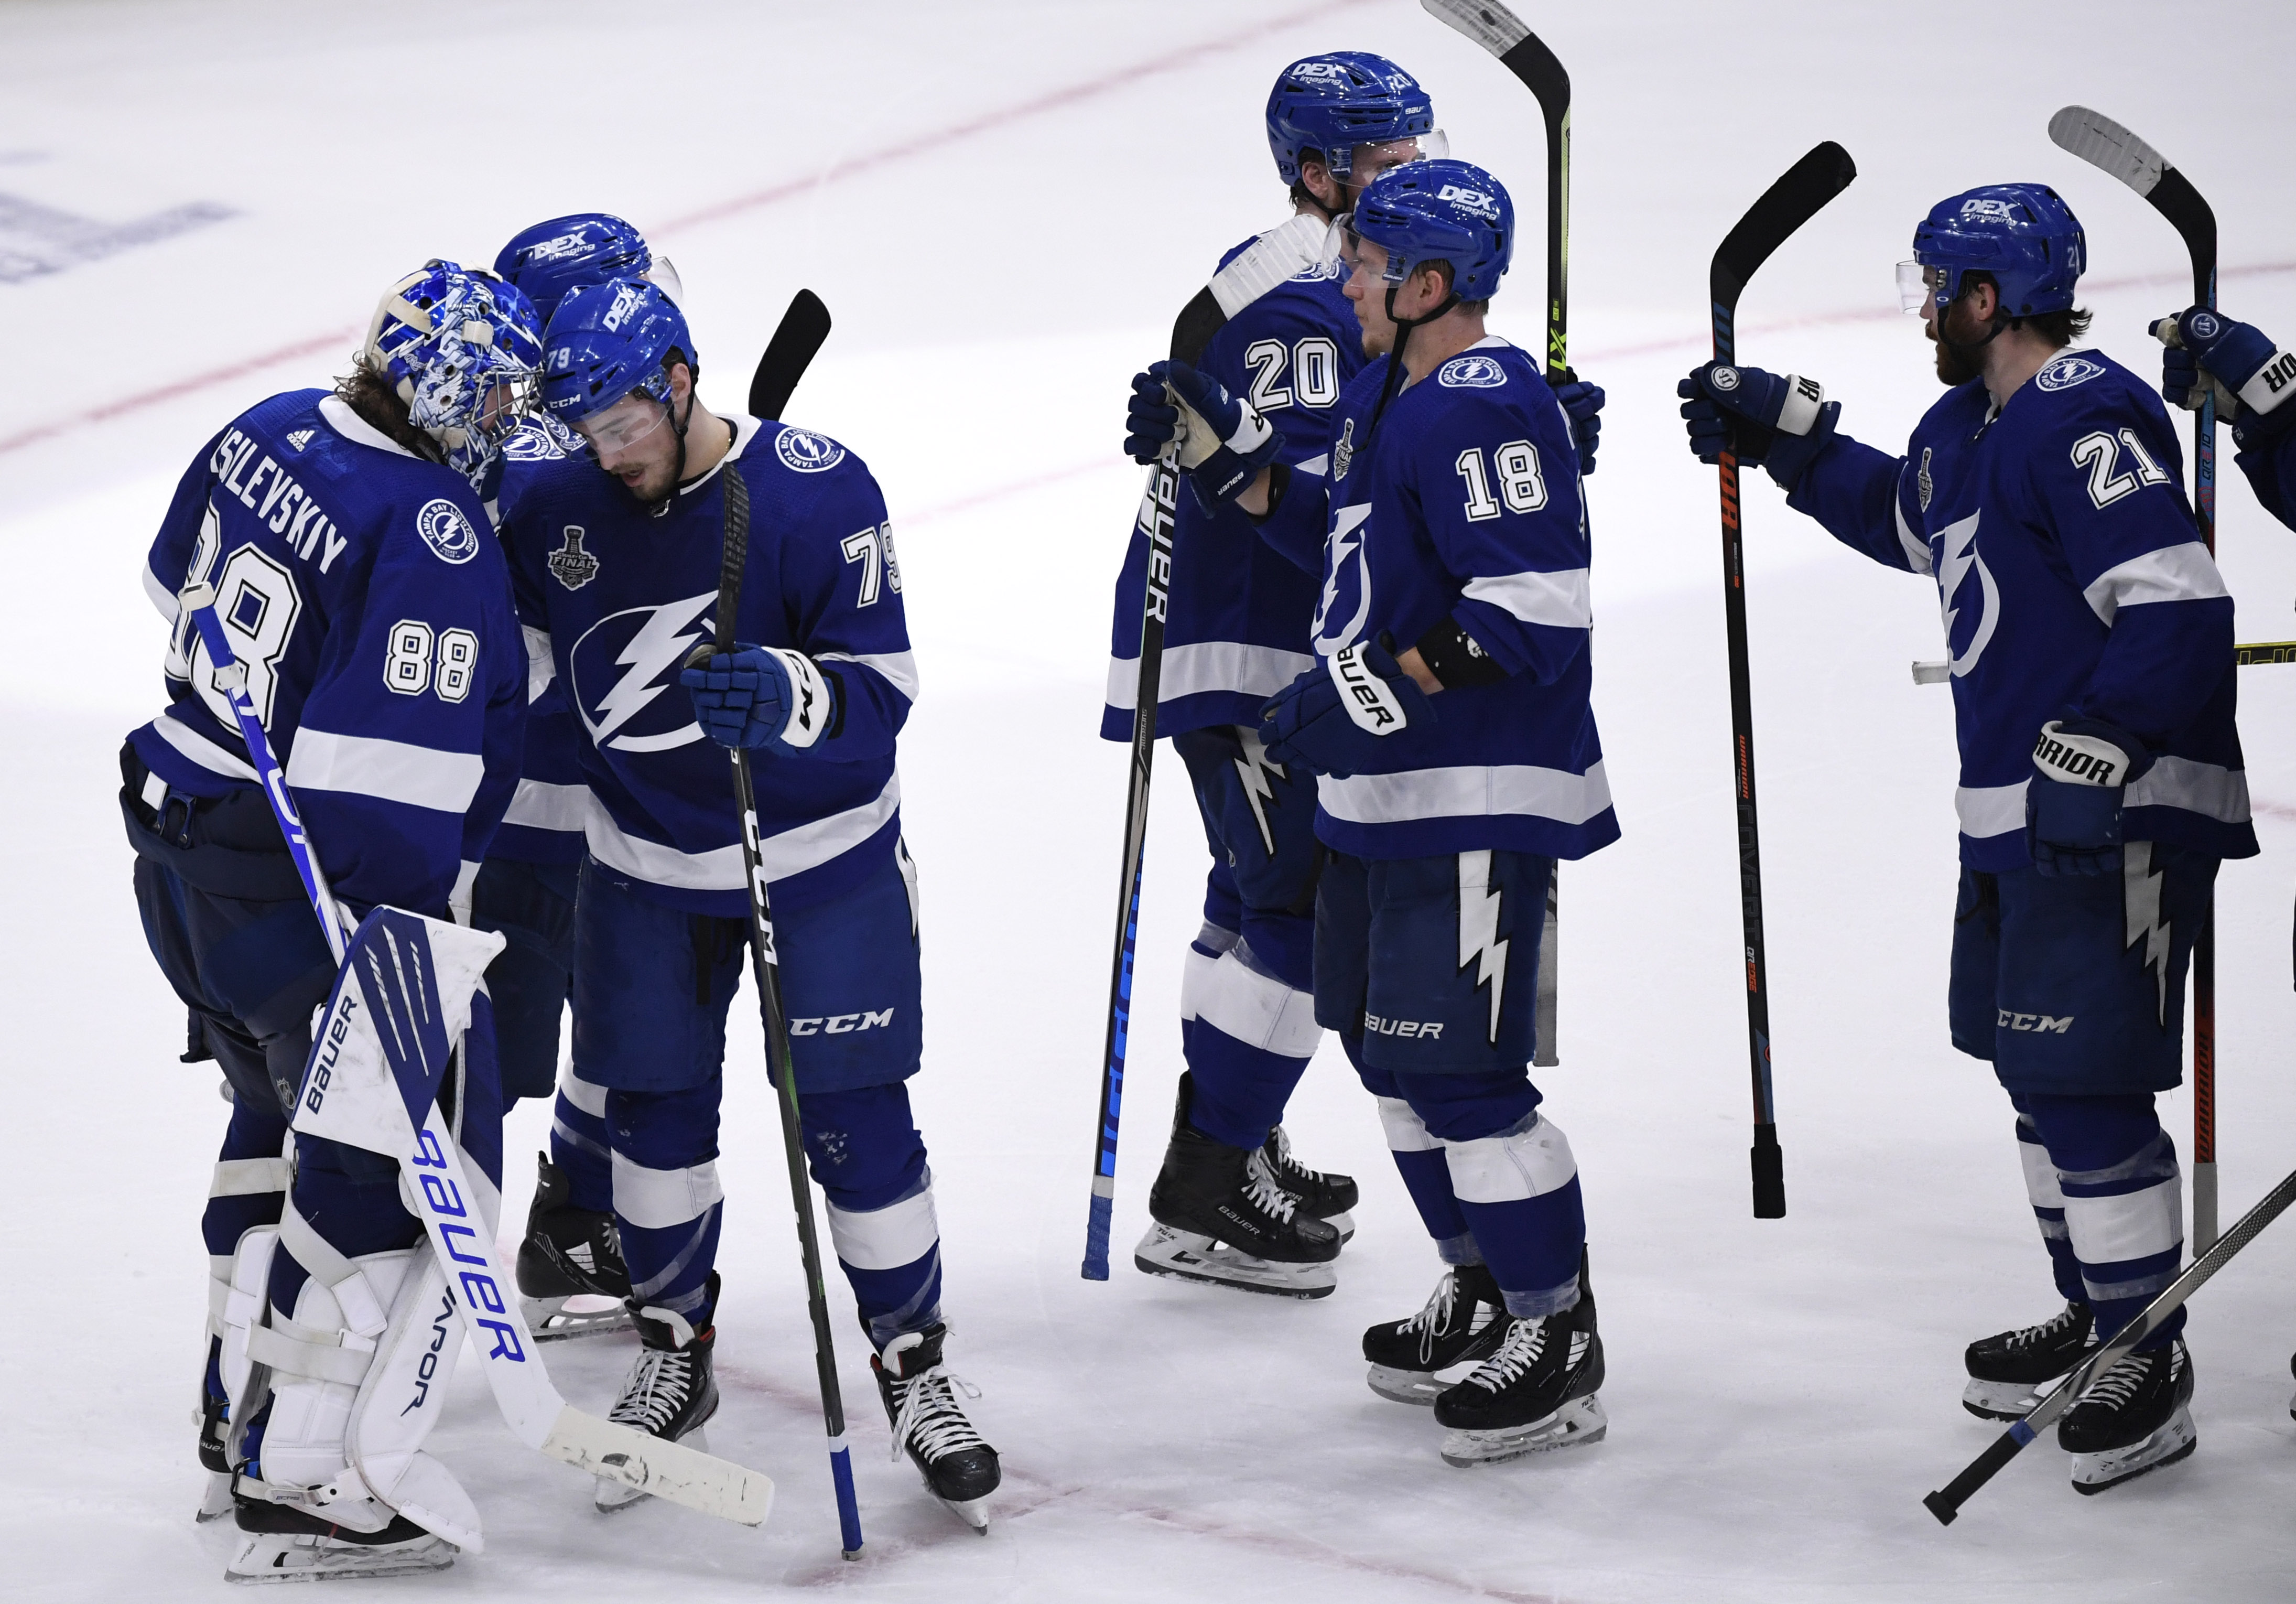 Lightning win game one of the 2021 Stanley Cup Final